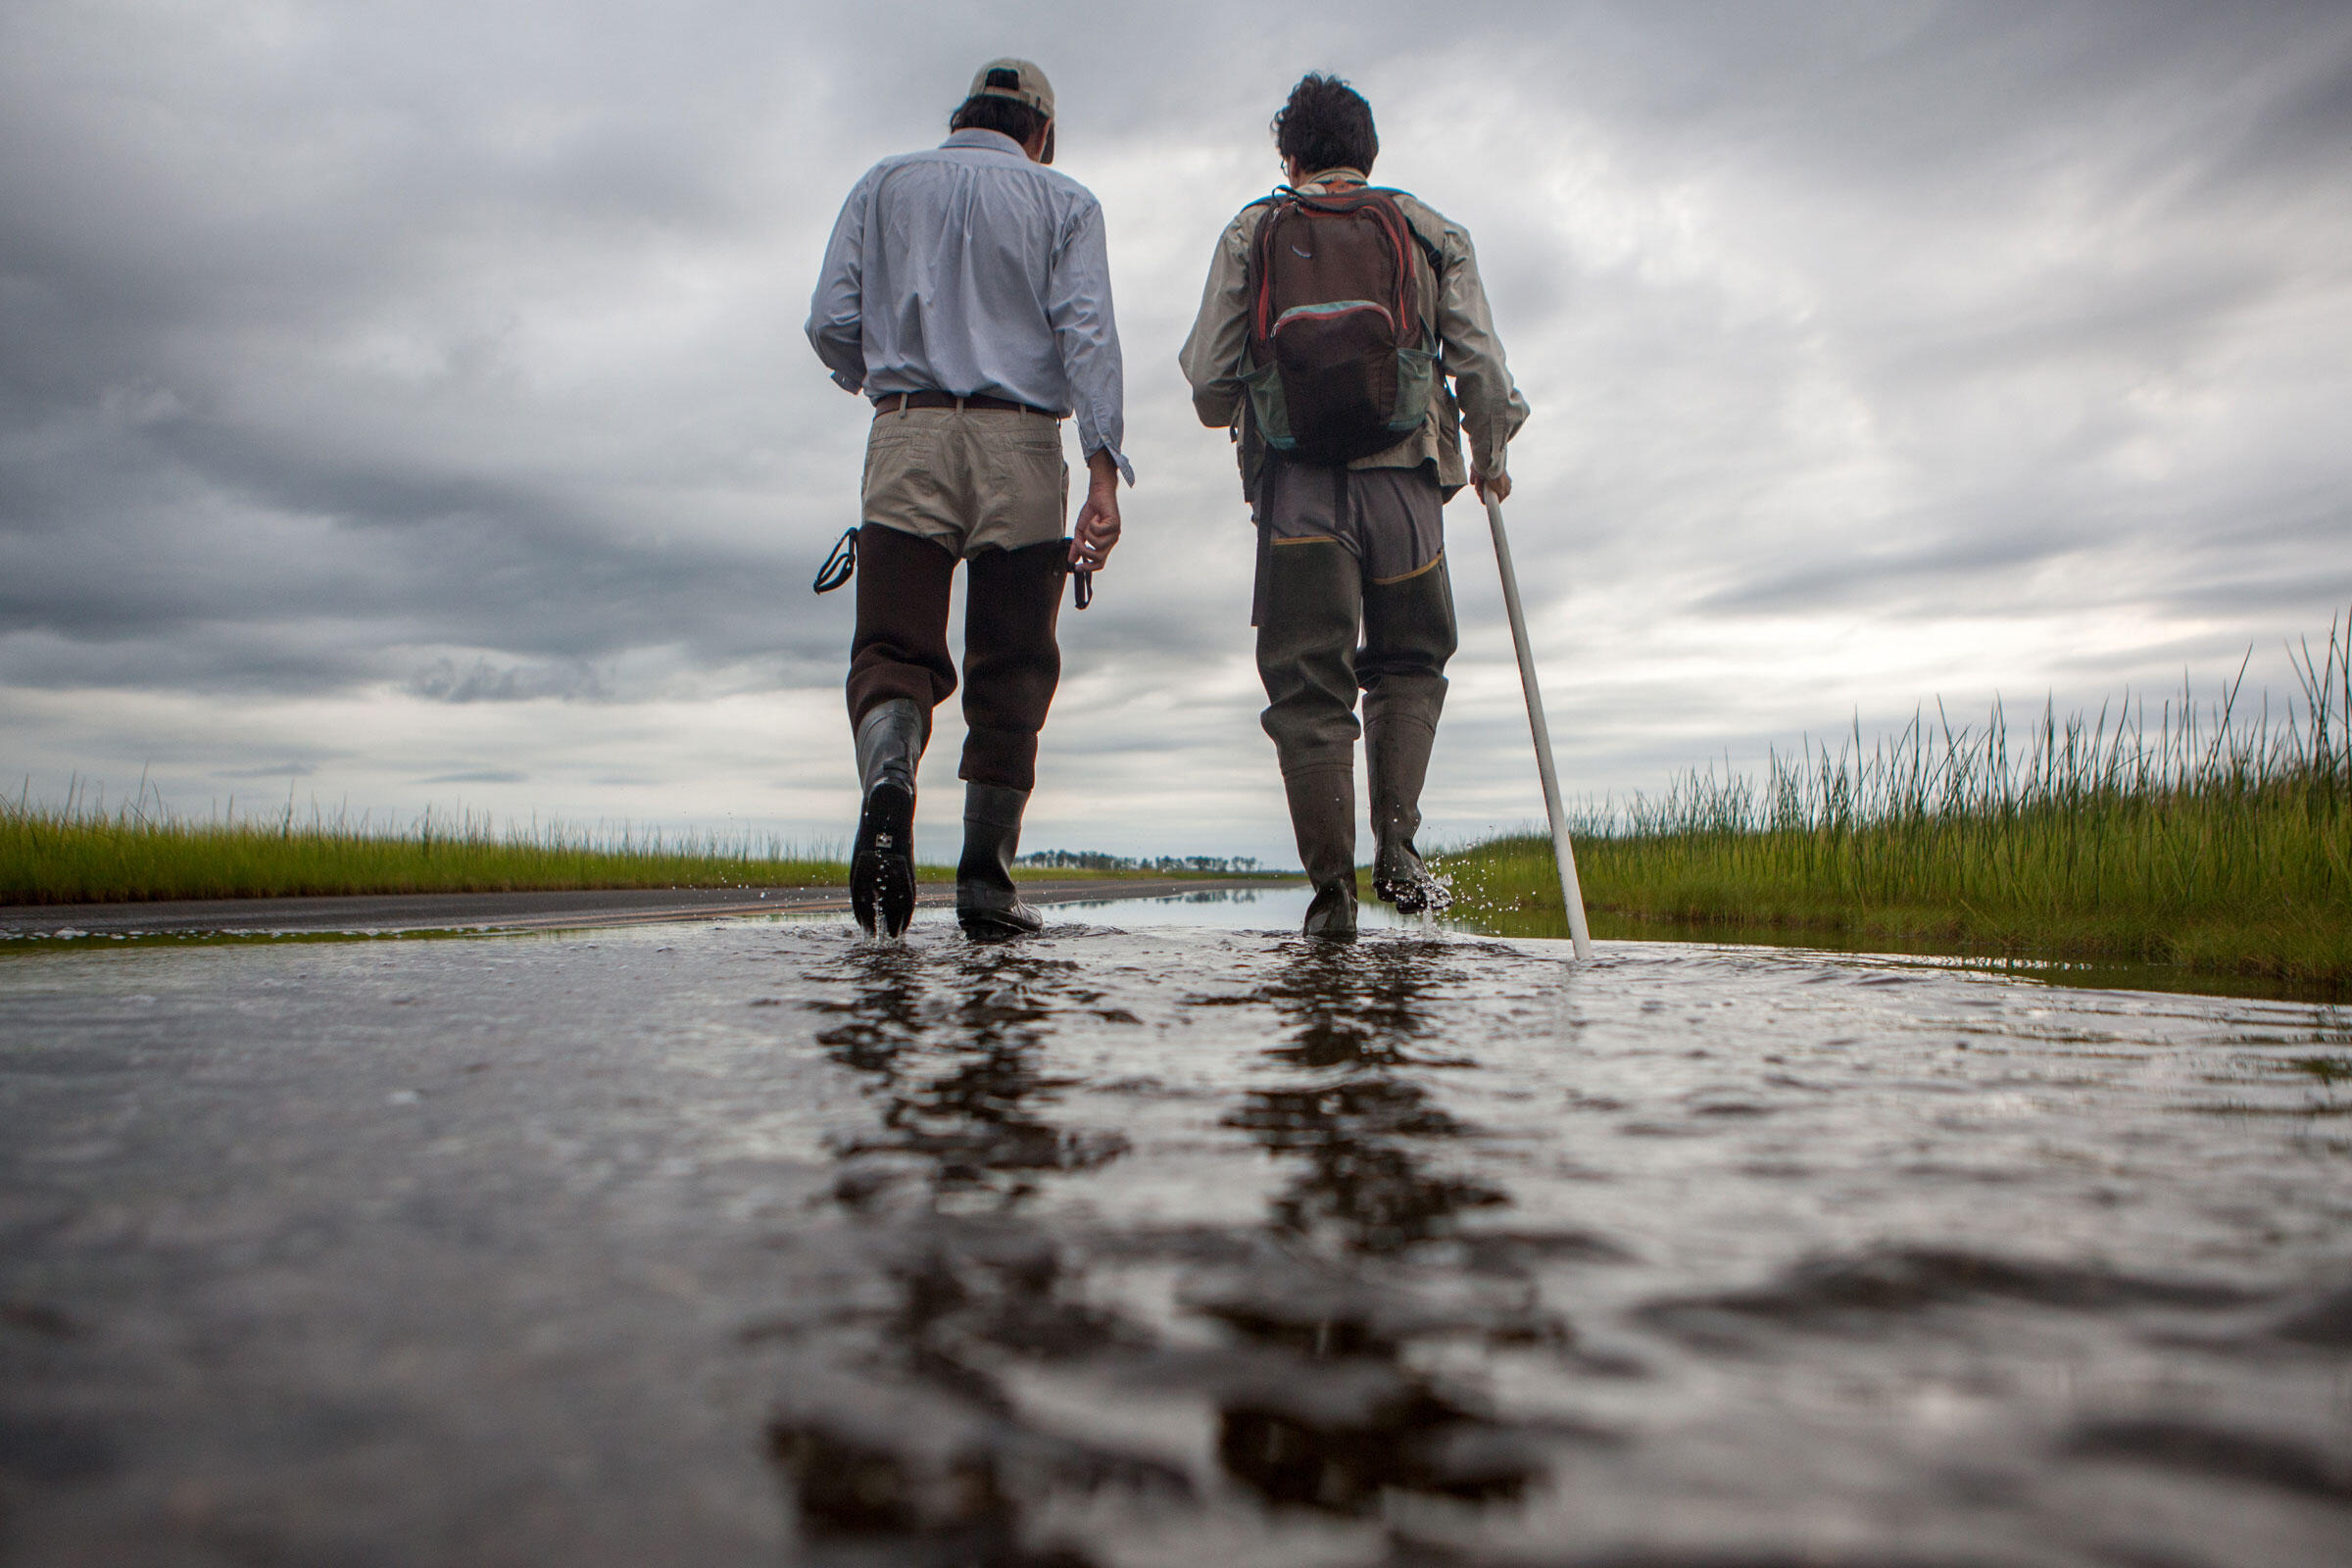 Walker Golder, Atlantic Flyway coast director at the National Audubon Society, and Dave Curson walk through a flooded section of Maple Dam Road on the edge of Blackwater NWR. Camilla Cerea/Audubon